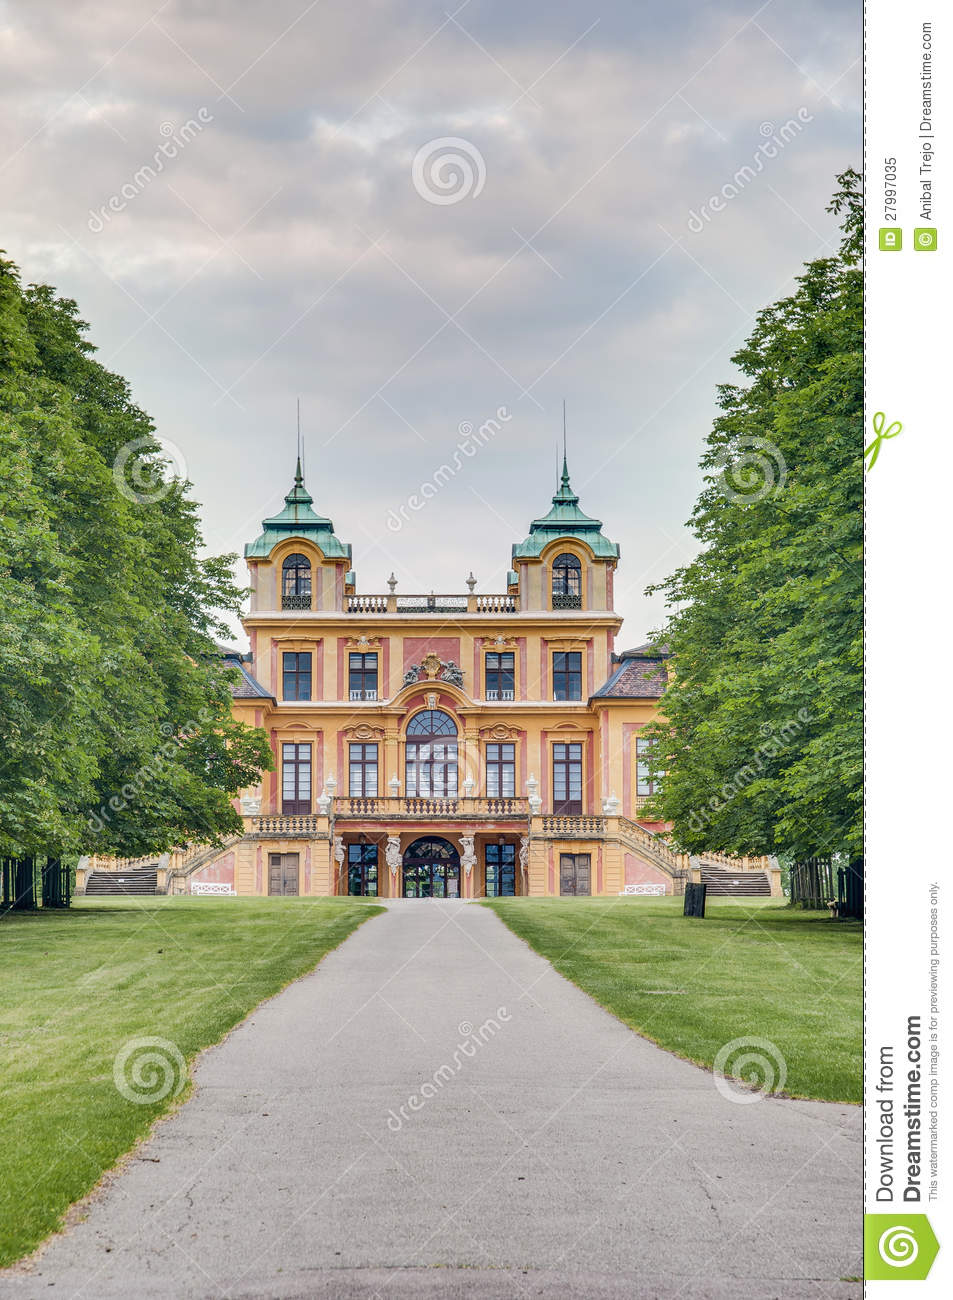 Lo Schloss favorito in Ludwigsburg, Germania